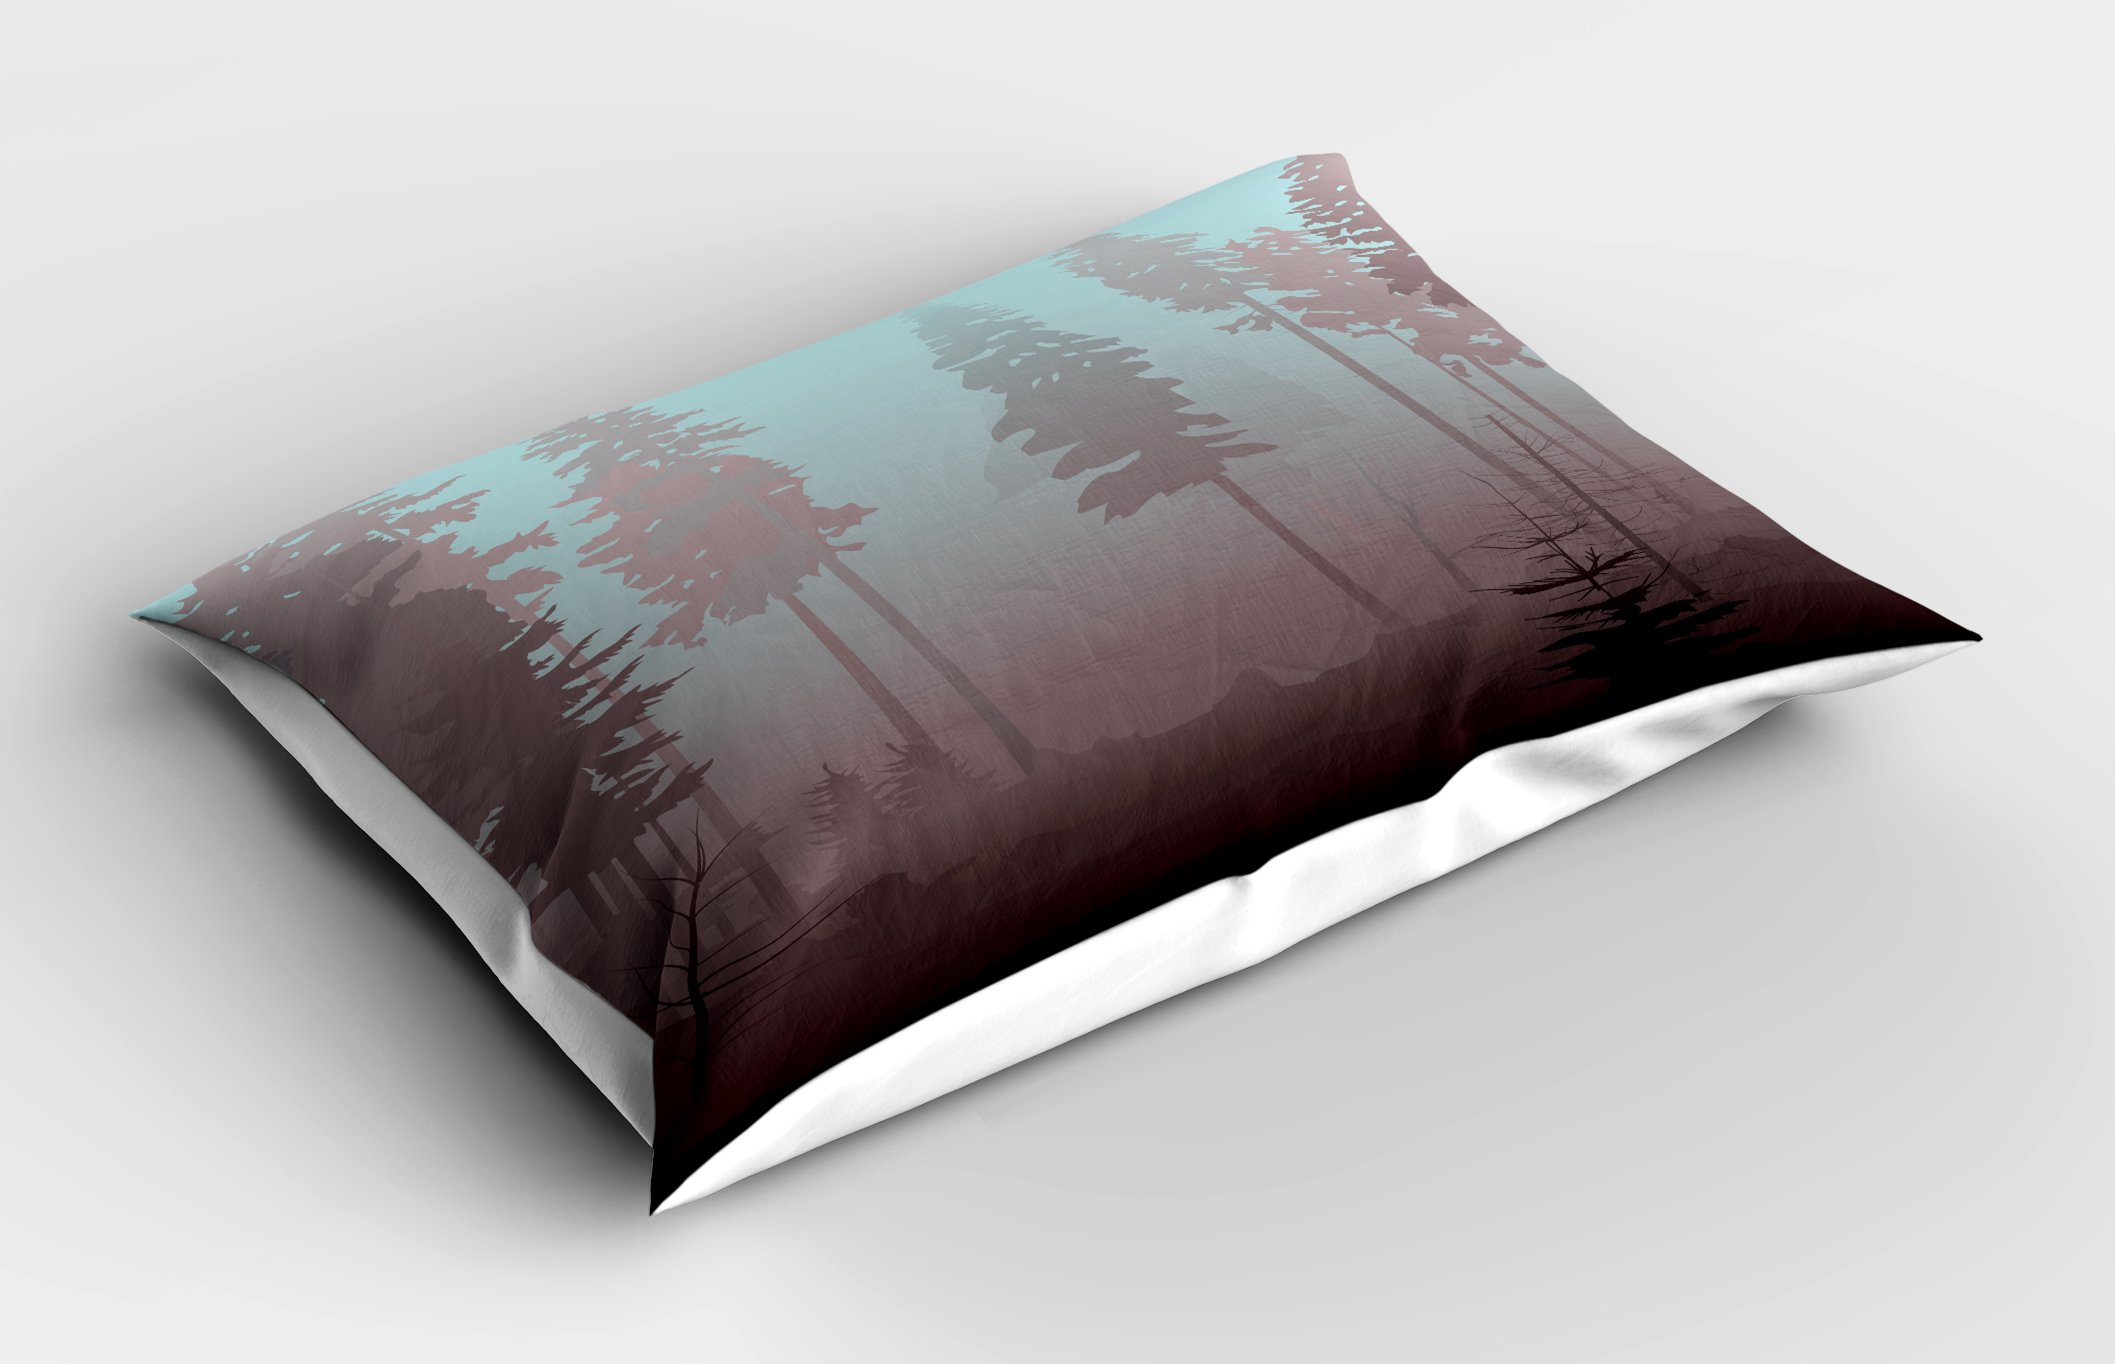 Ambesonne Forest Pillow Sham, Early Morning in Mysterious Woods with Heavy Fog Coniferous Trees, Decorative Standard King Size Printed Pillowcase, 36 X 20 inches, Pale Blue Dried Rose Maroon by Ambesonne (Image #2)